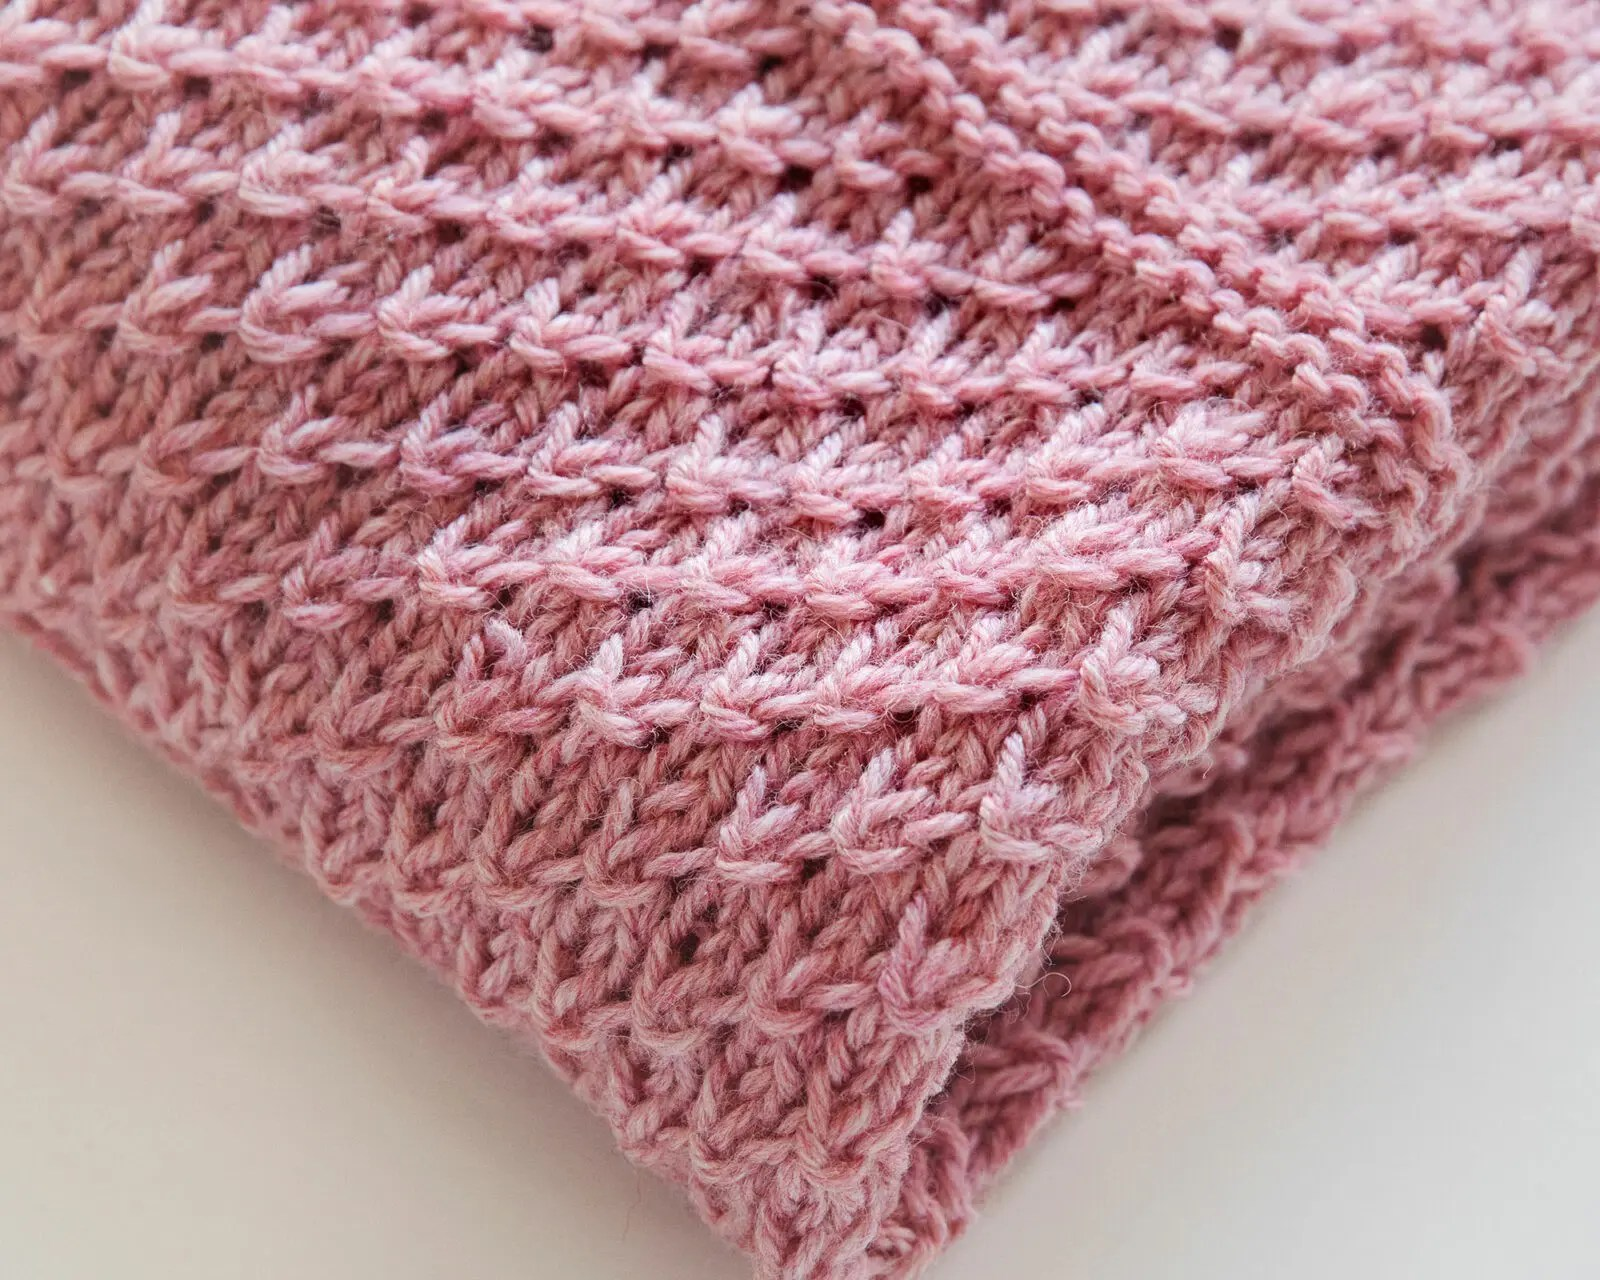 picture relating to Free Printable Knitting Patterns for Baby Blankets known as Leelee Knits - Webpage 2 of 6 - Knitting and Crochet